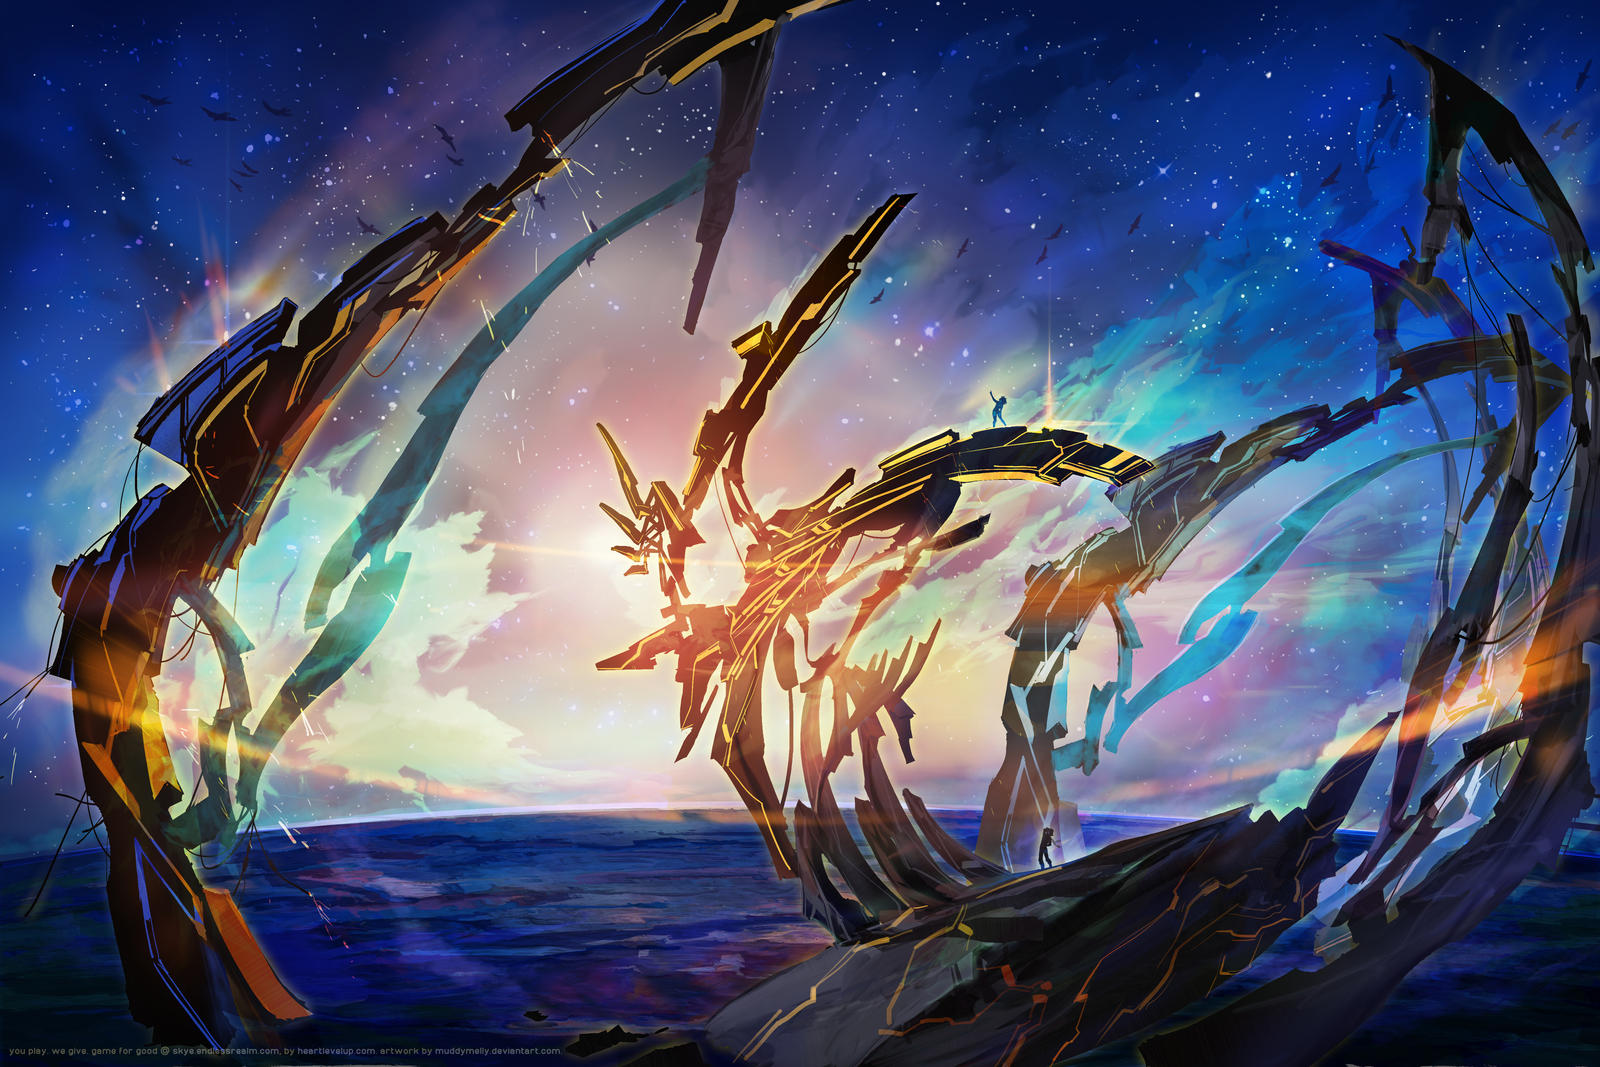 [MMO Concept Art] [Skye] - Lyra's Ship, Kyanos by muddymelly